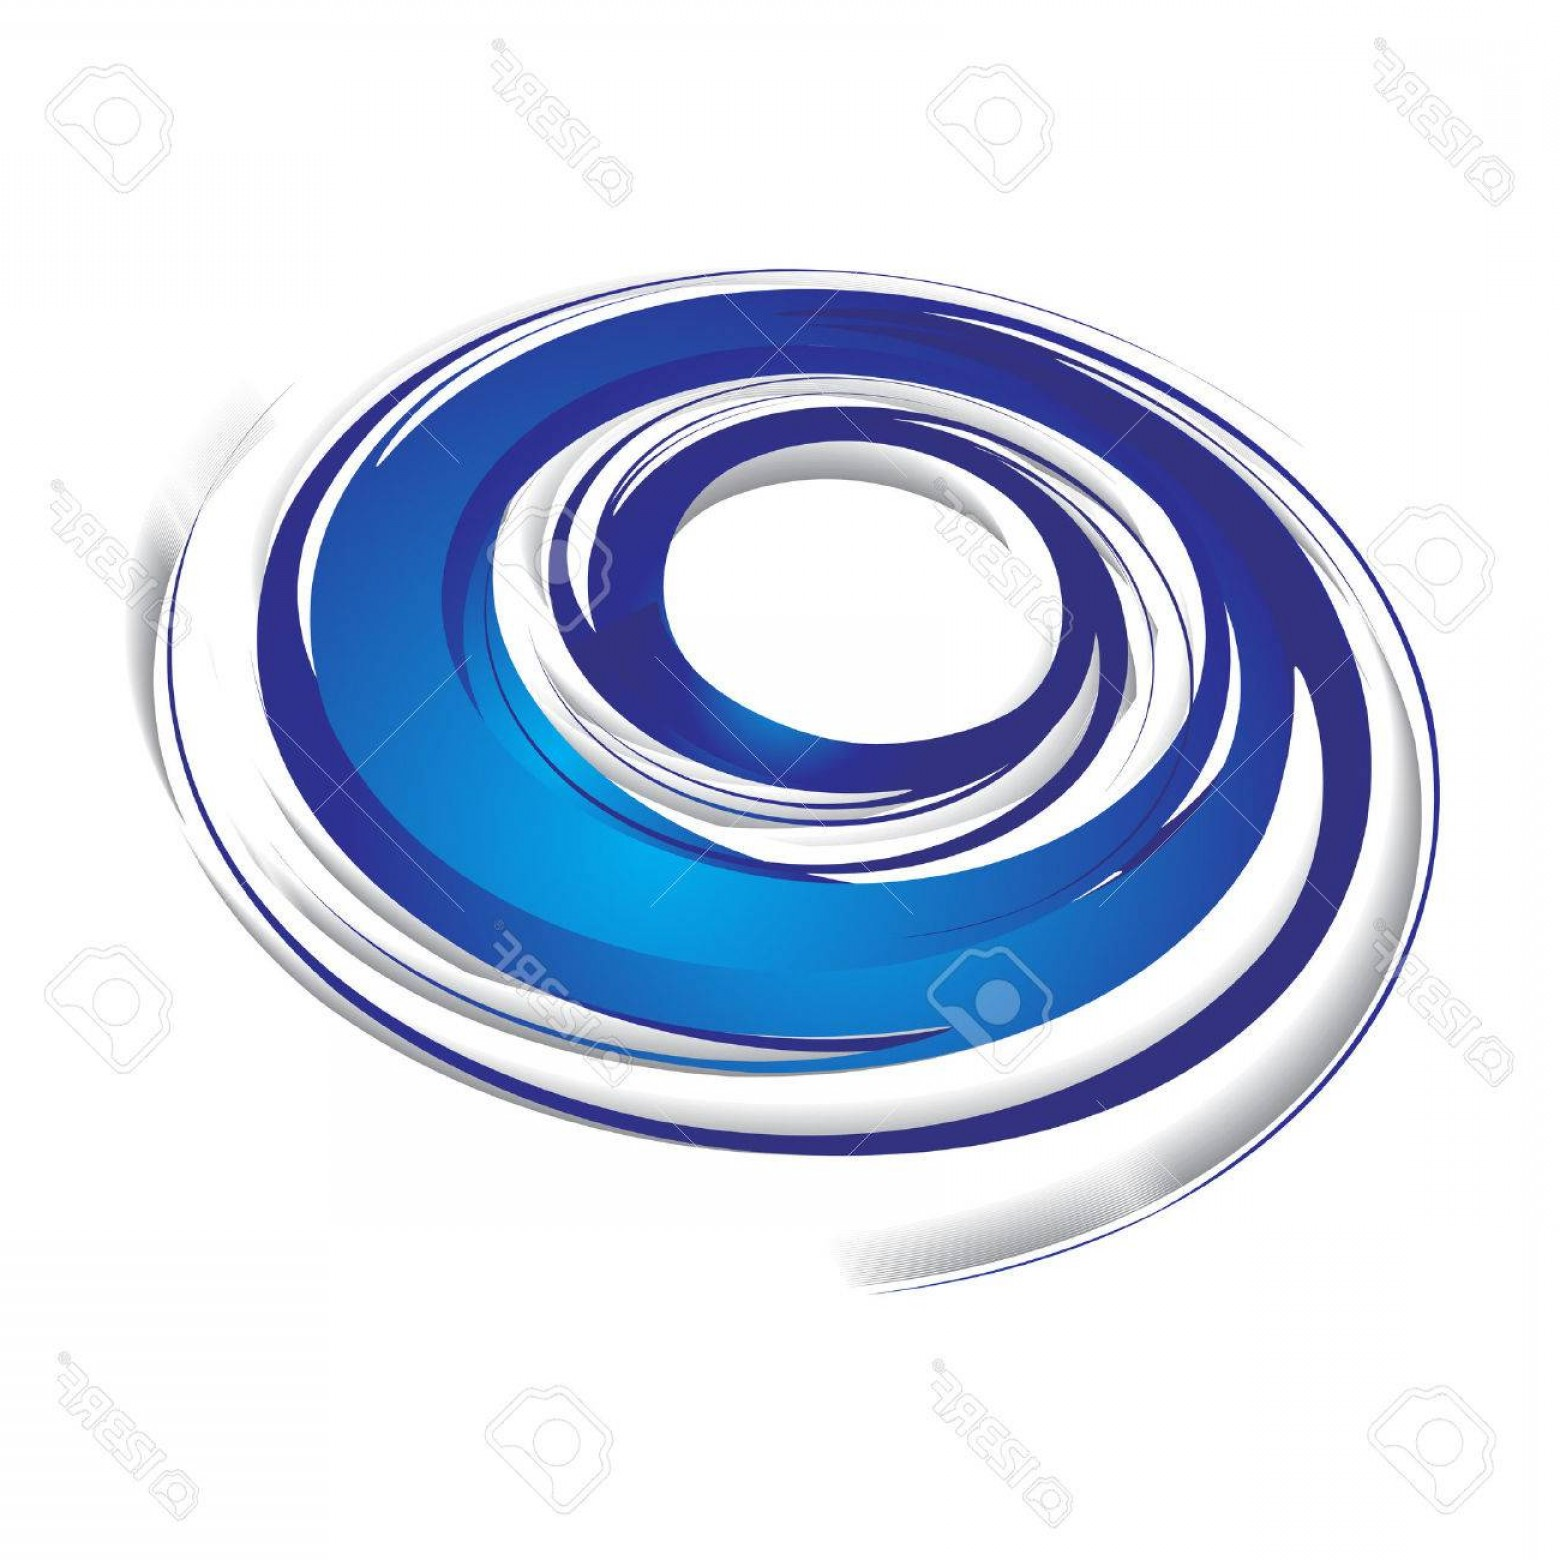 Blue With White Background Vector: Photod Abstract Blue Swirl Wave On A White Background Vector Illustration